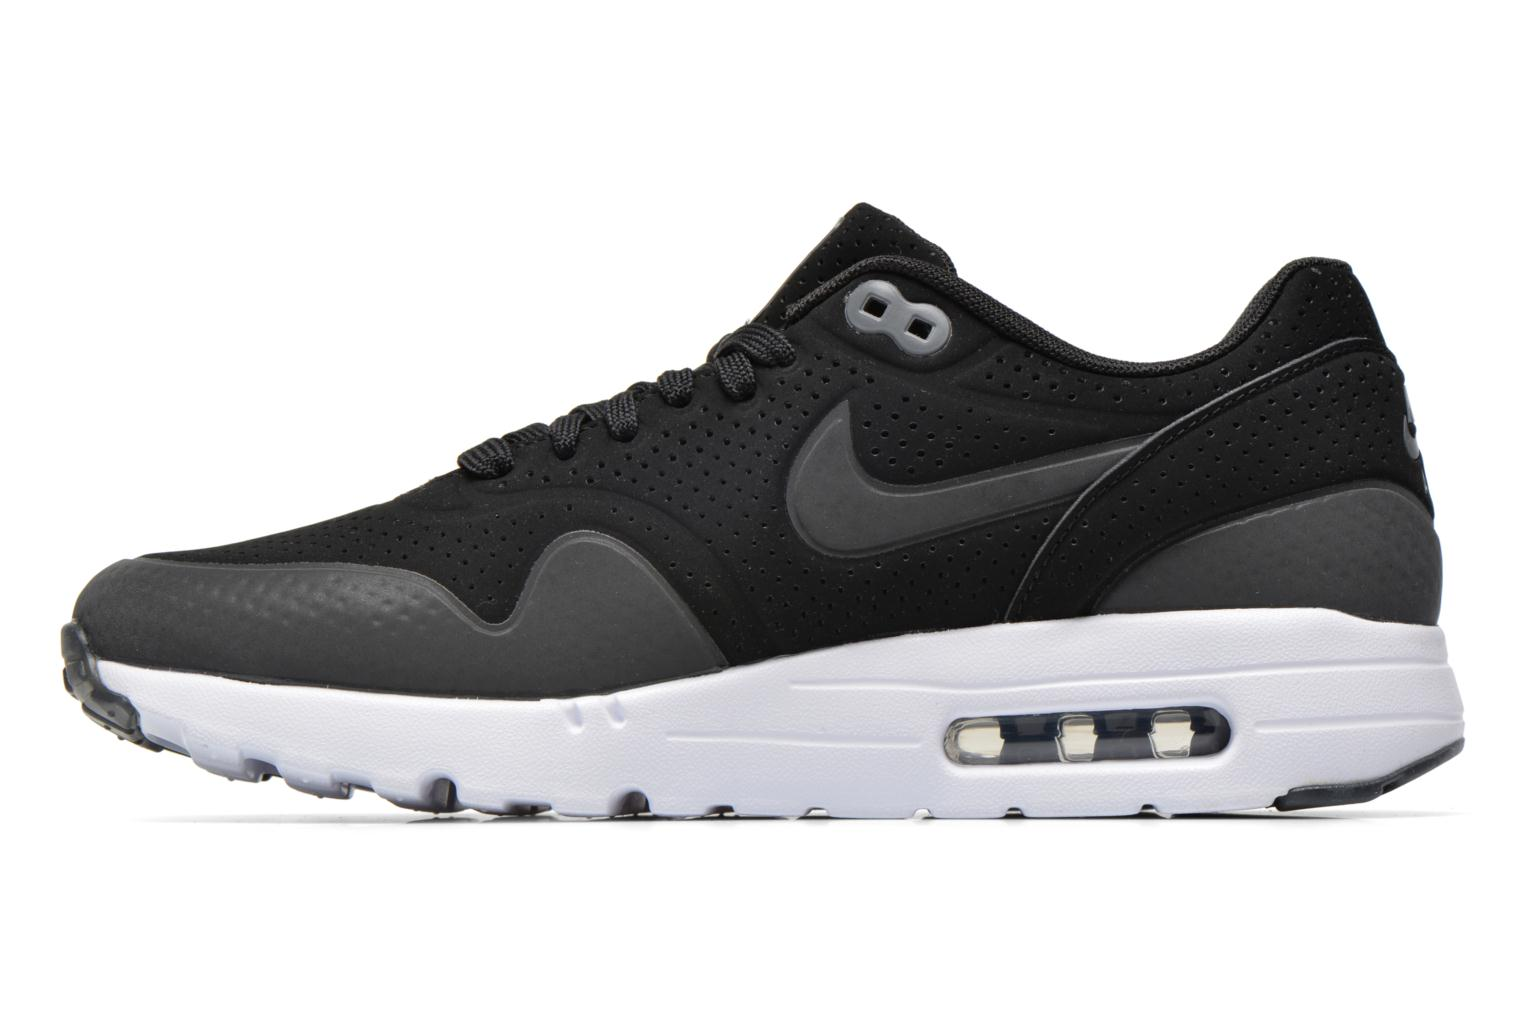 Nike Air Max 1 Ultra Moire Black/Black-Dark Grey-White